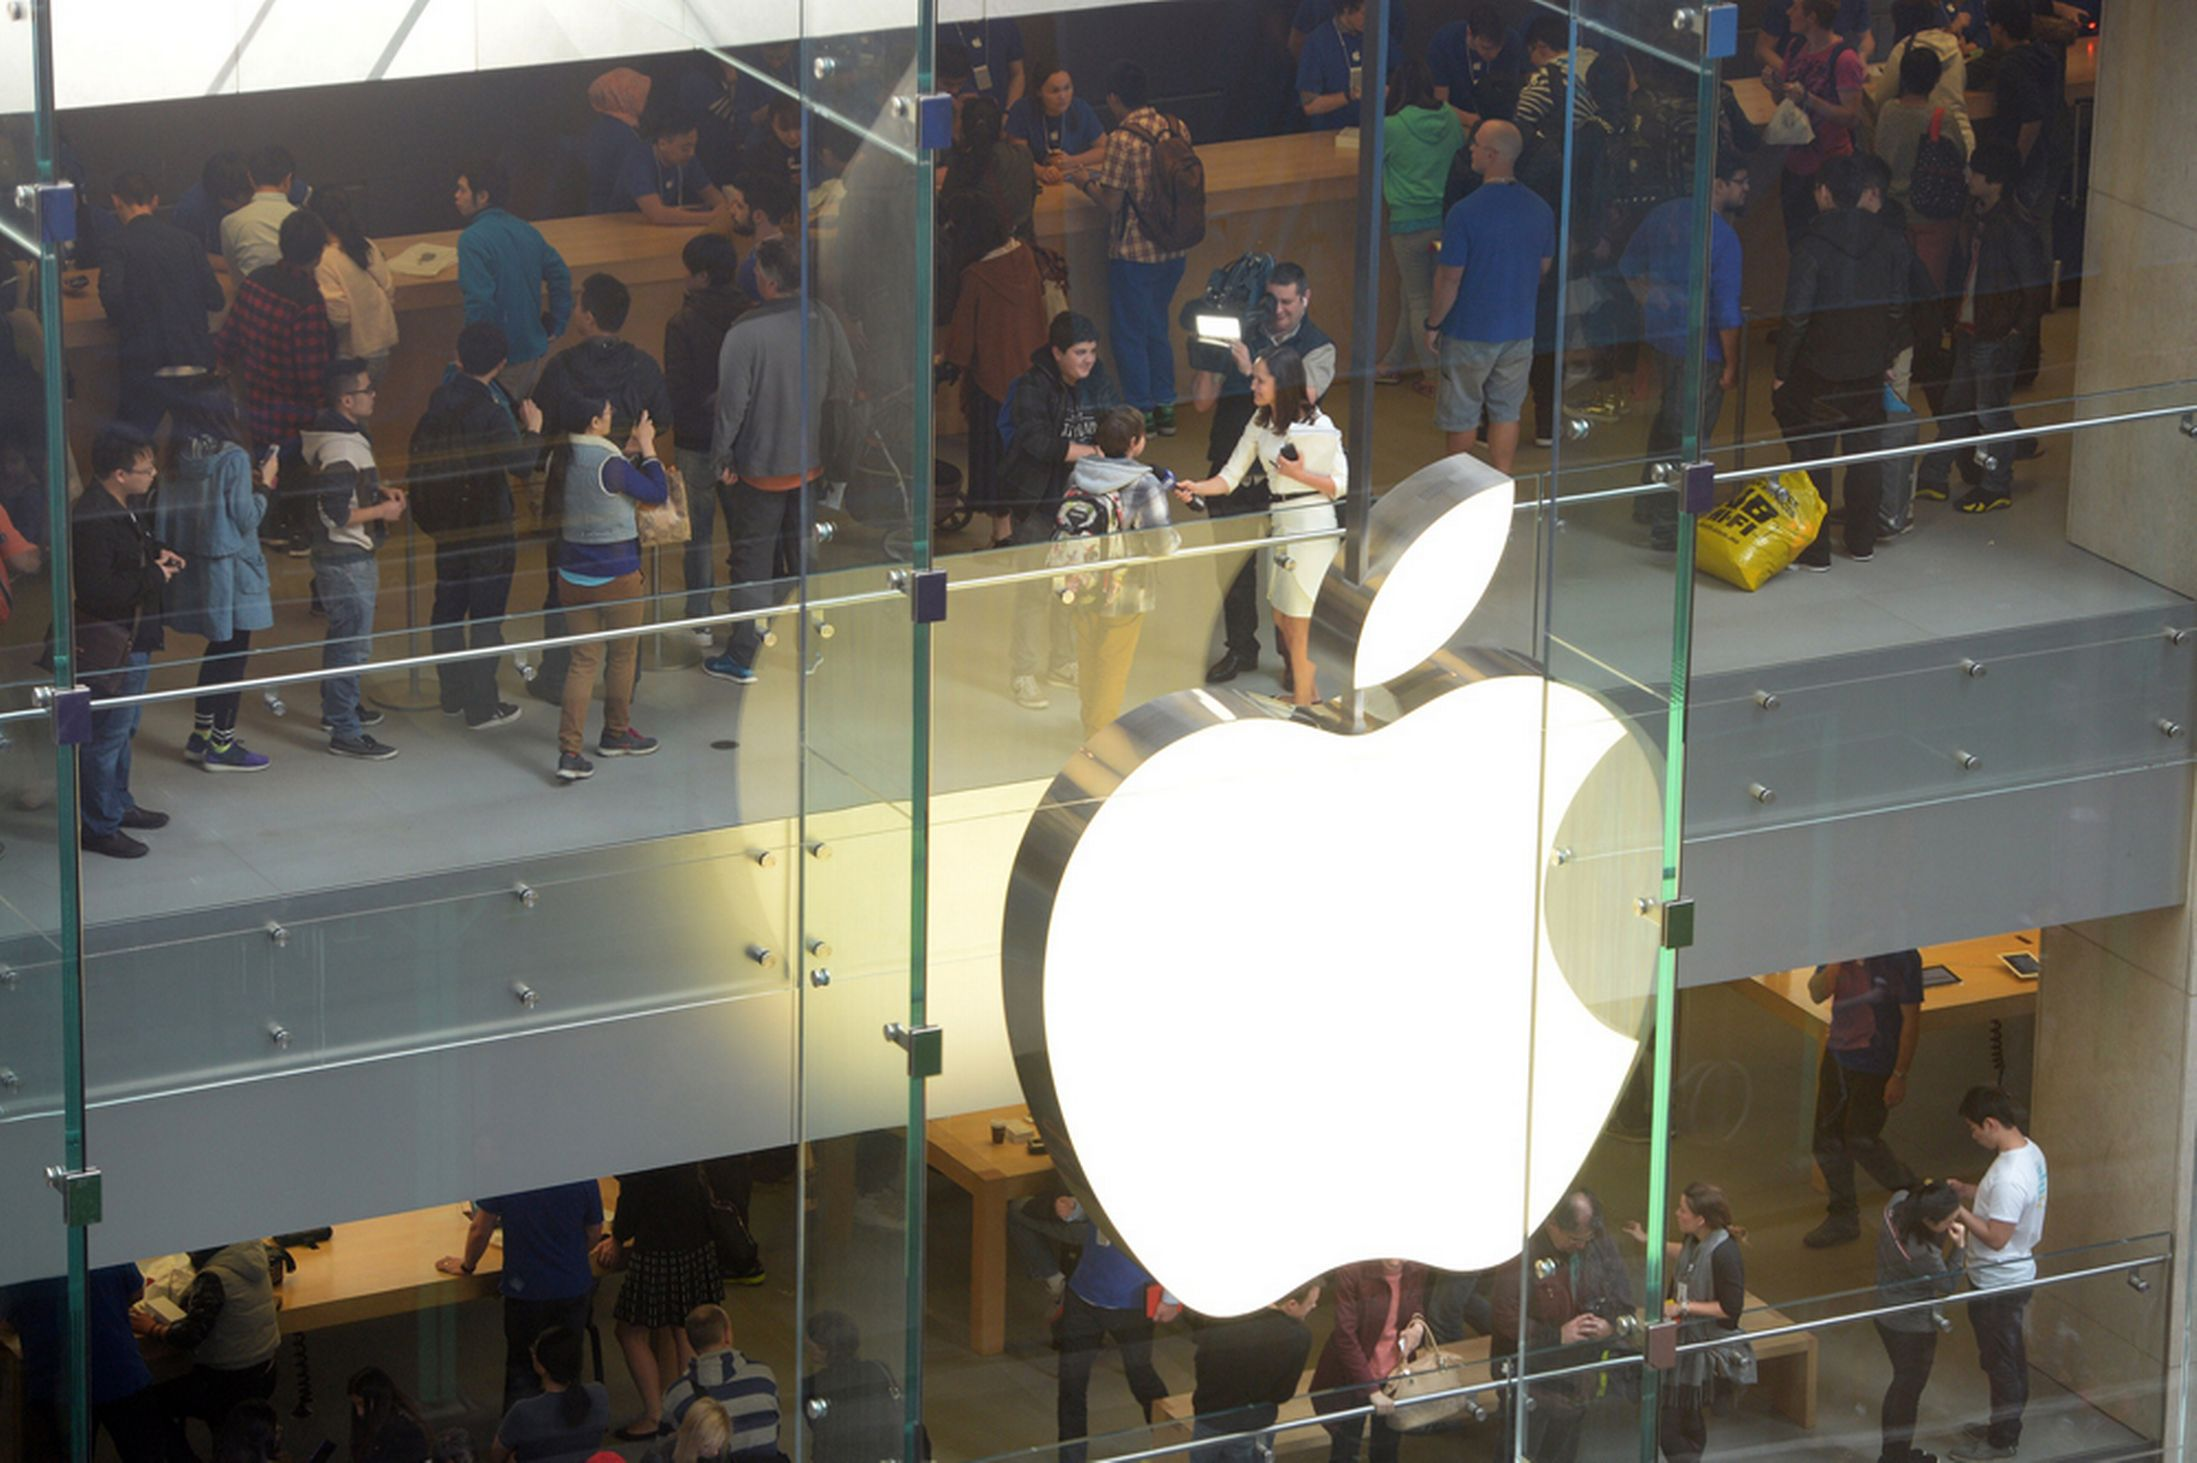 Apple will convert the failed GT Advanced sapphire plant in Arizona into a massive data center